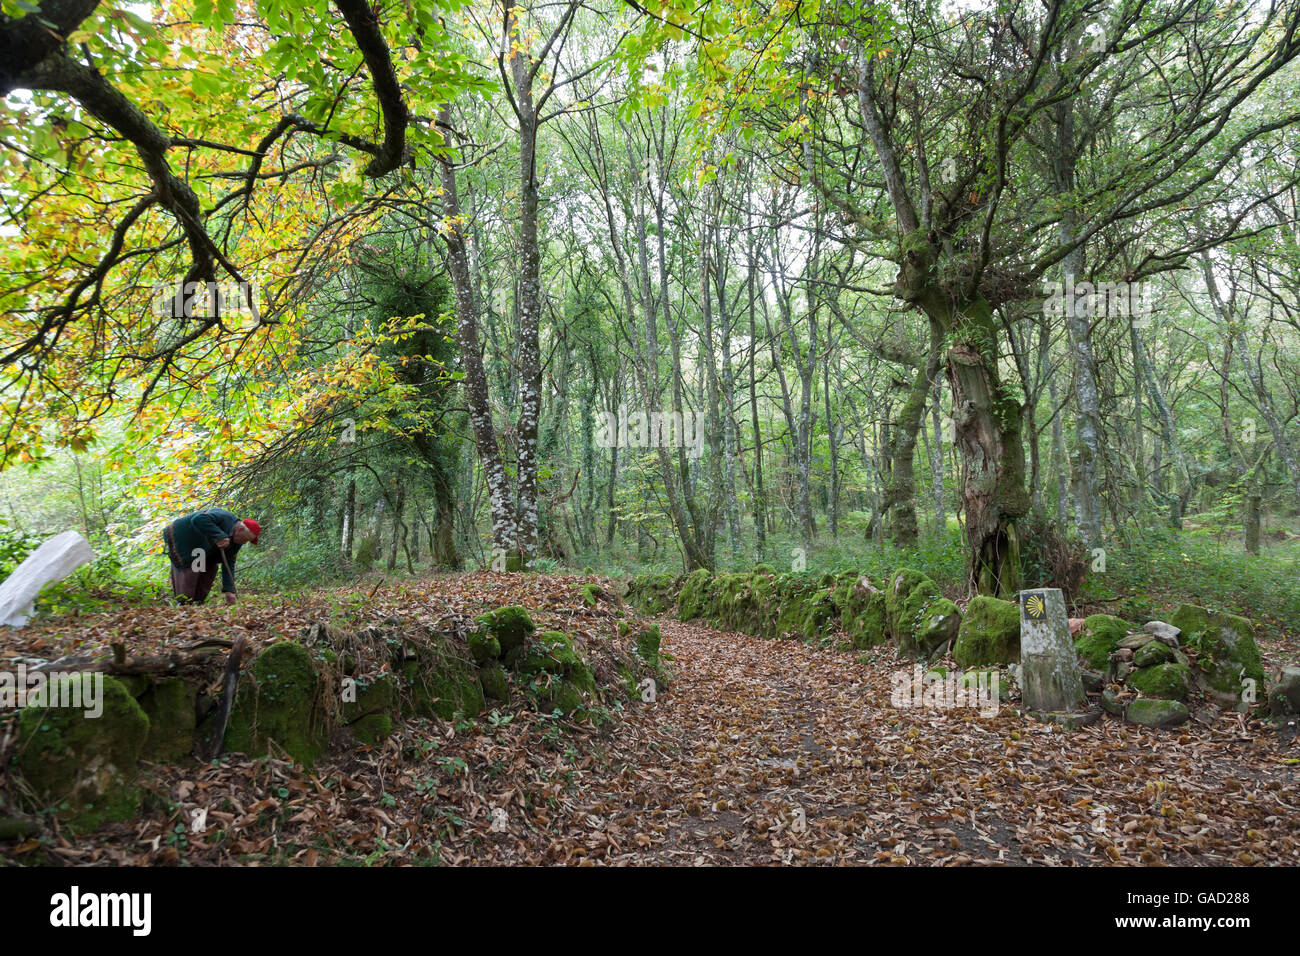 Province of Lugo, Spain: Near the village of Bacurín a man harvests sweet chestnuts. - Stock Image